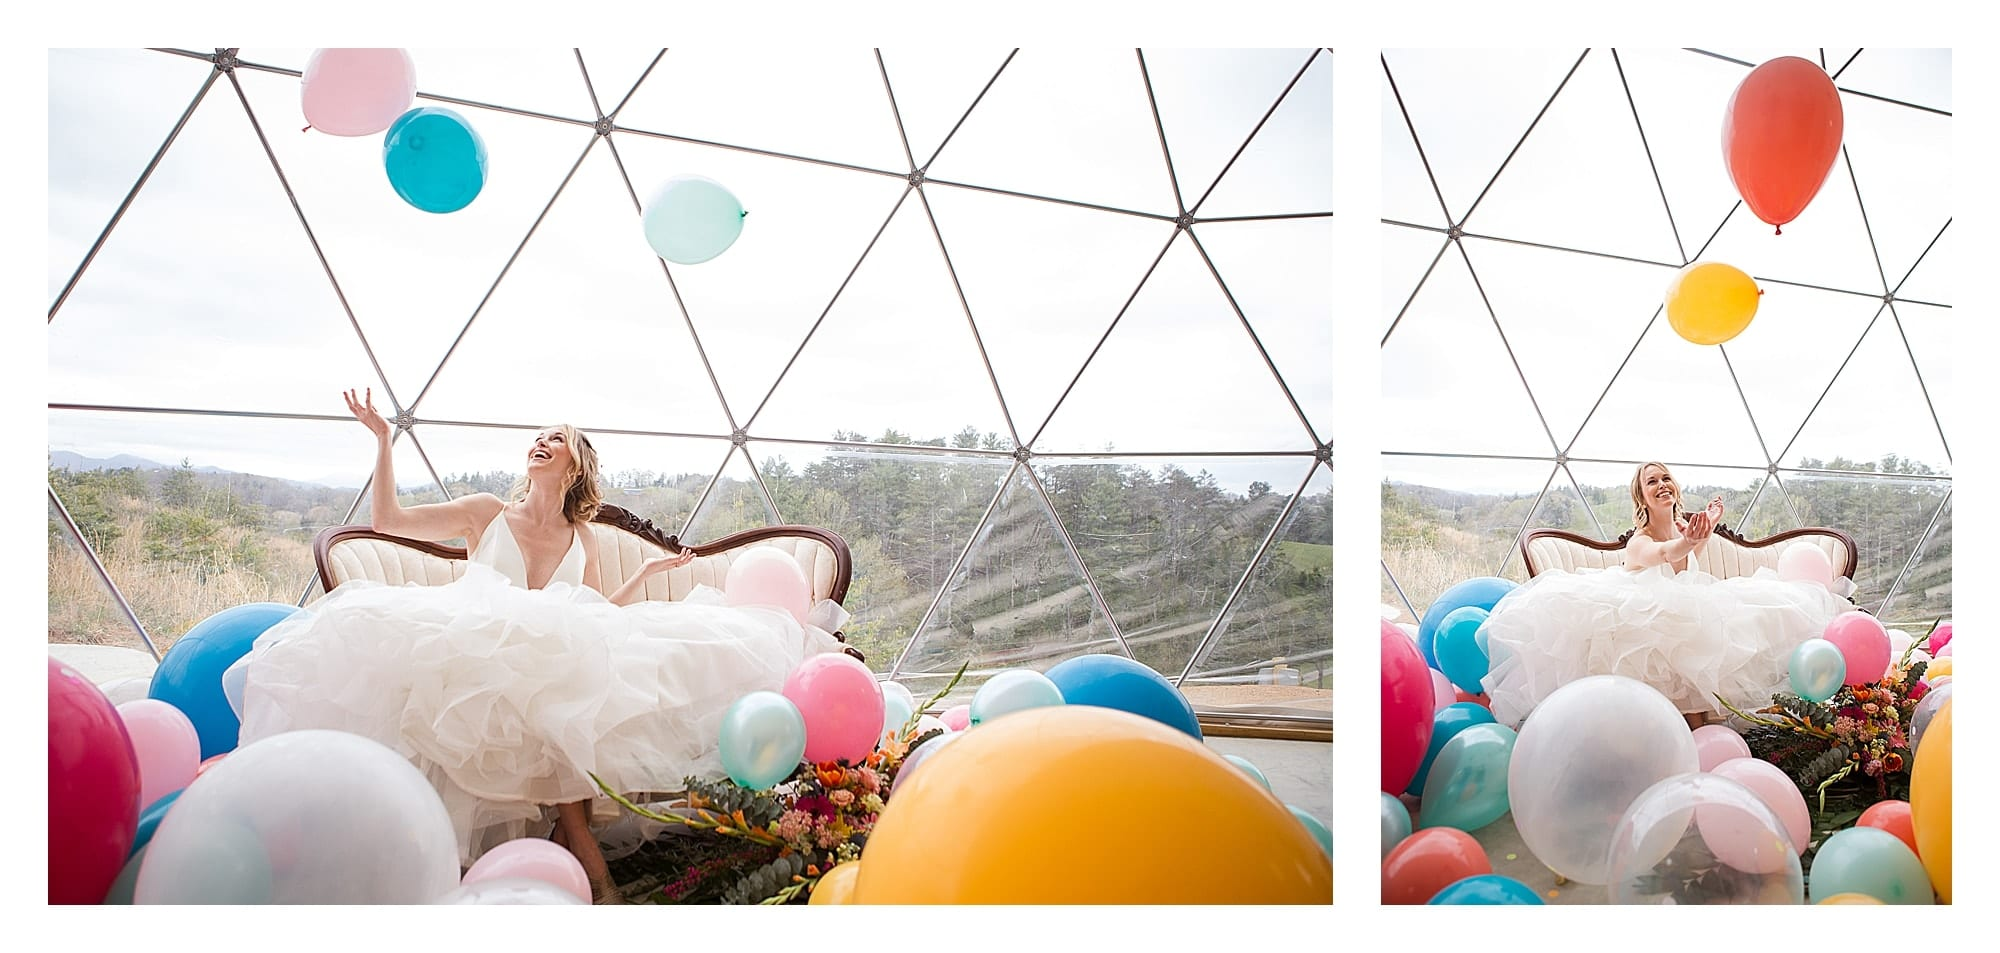 Bride sitting on vintage couch in wedding dress laughing surrounded by many multi colored balloons